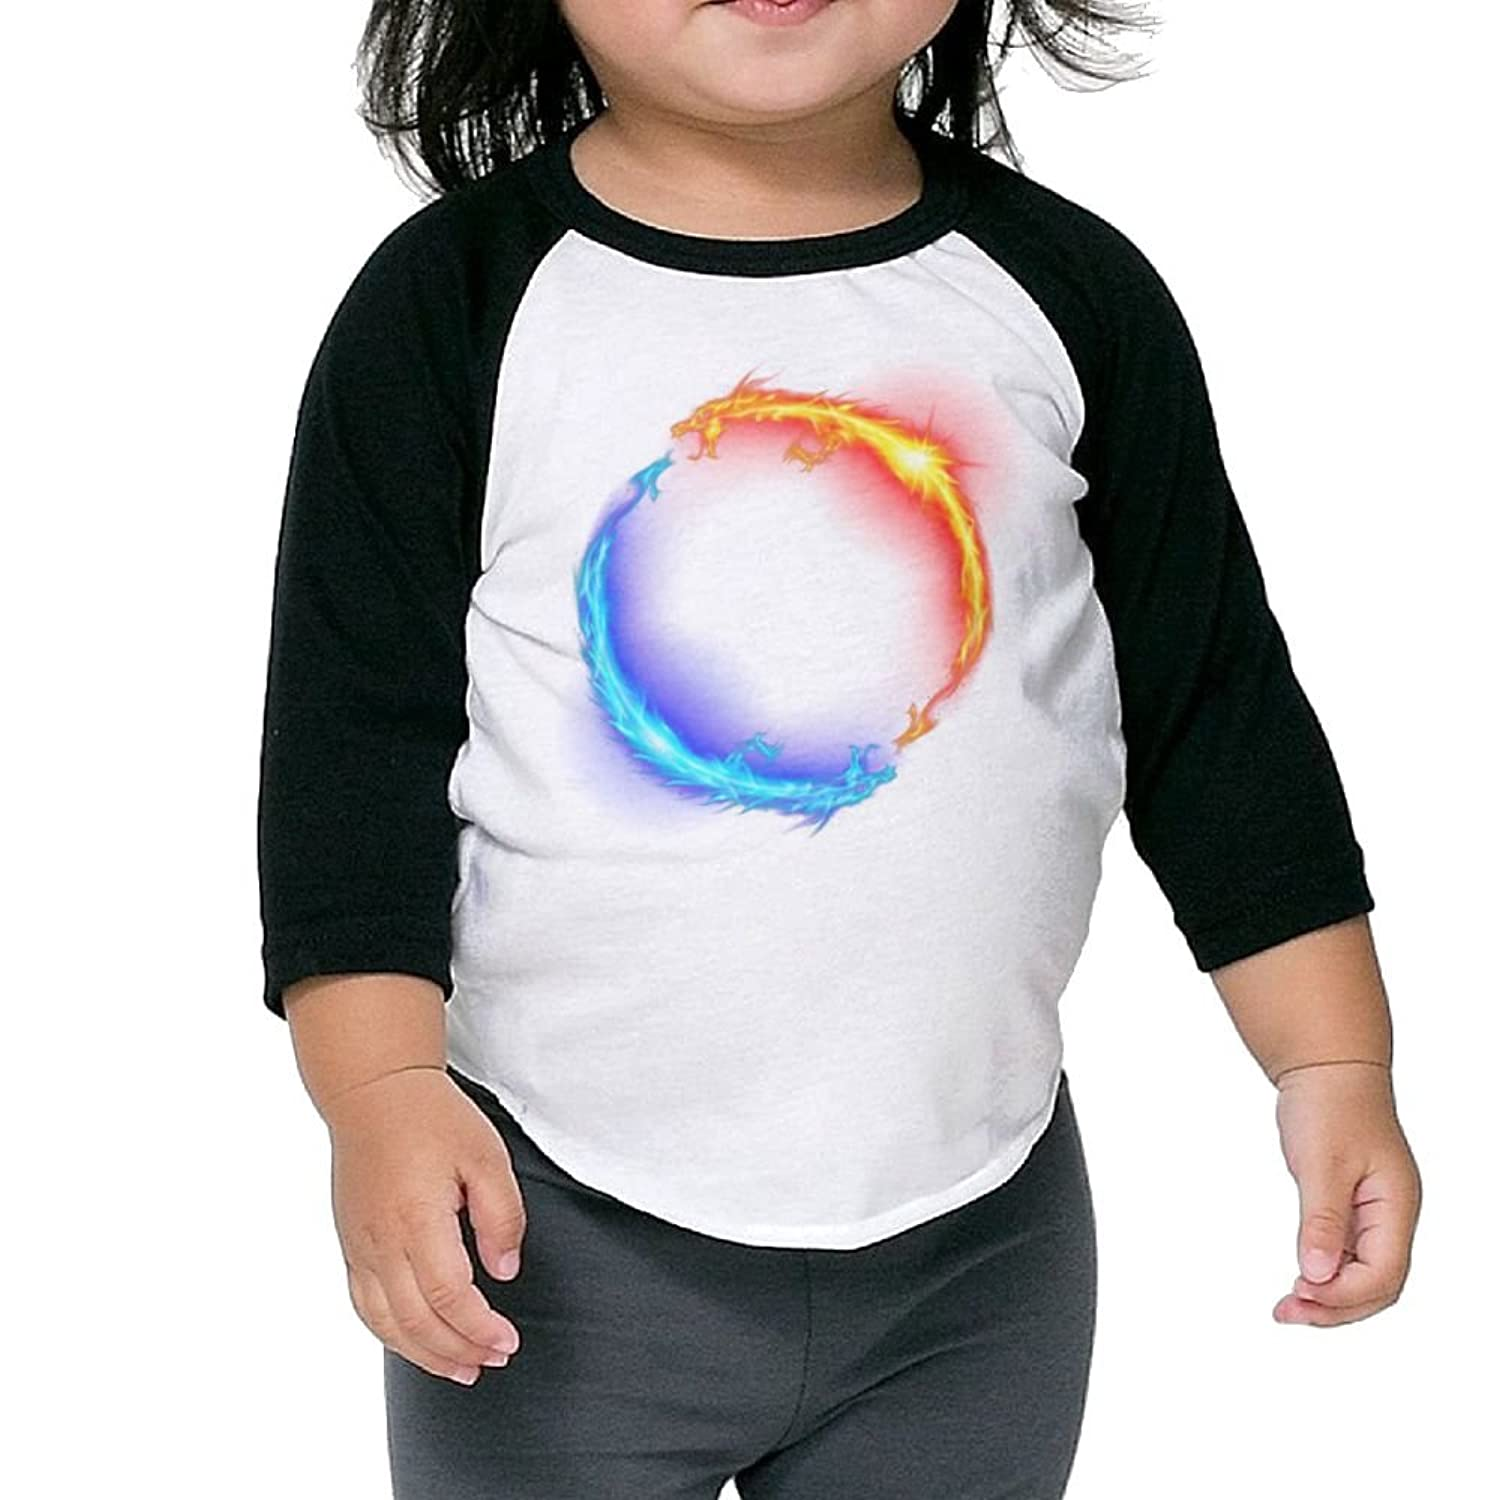 Hot CHENLY Unisex Kid's Sleeves Warm Ice and Fire Dragons Cotton 3/4 Sleeves T-Shirt For Child for sale